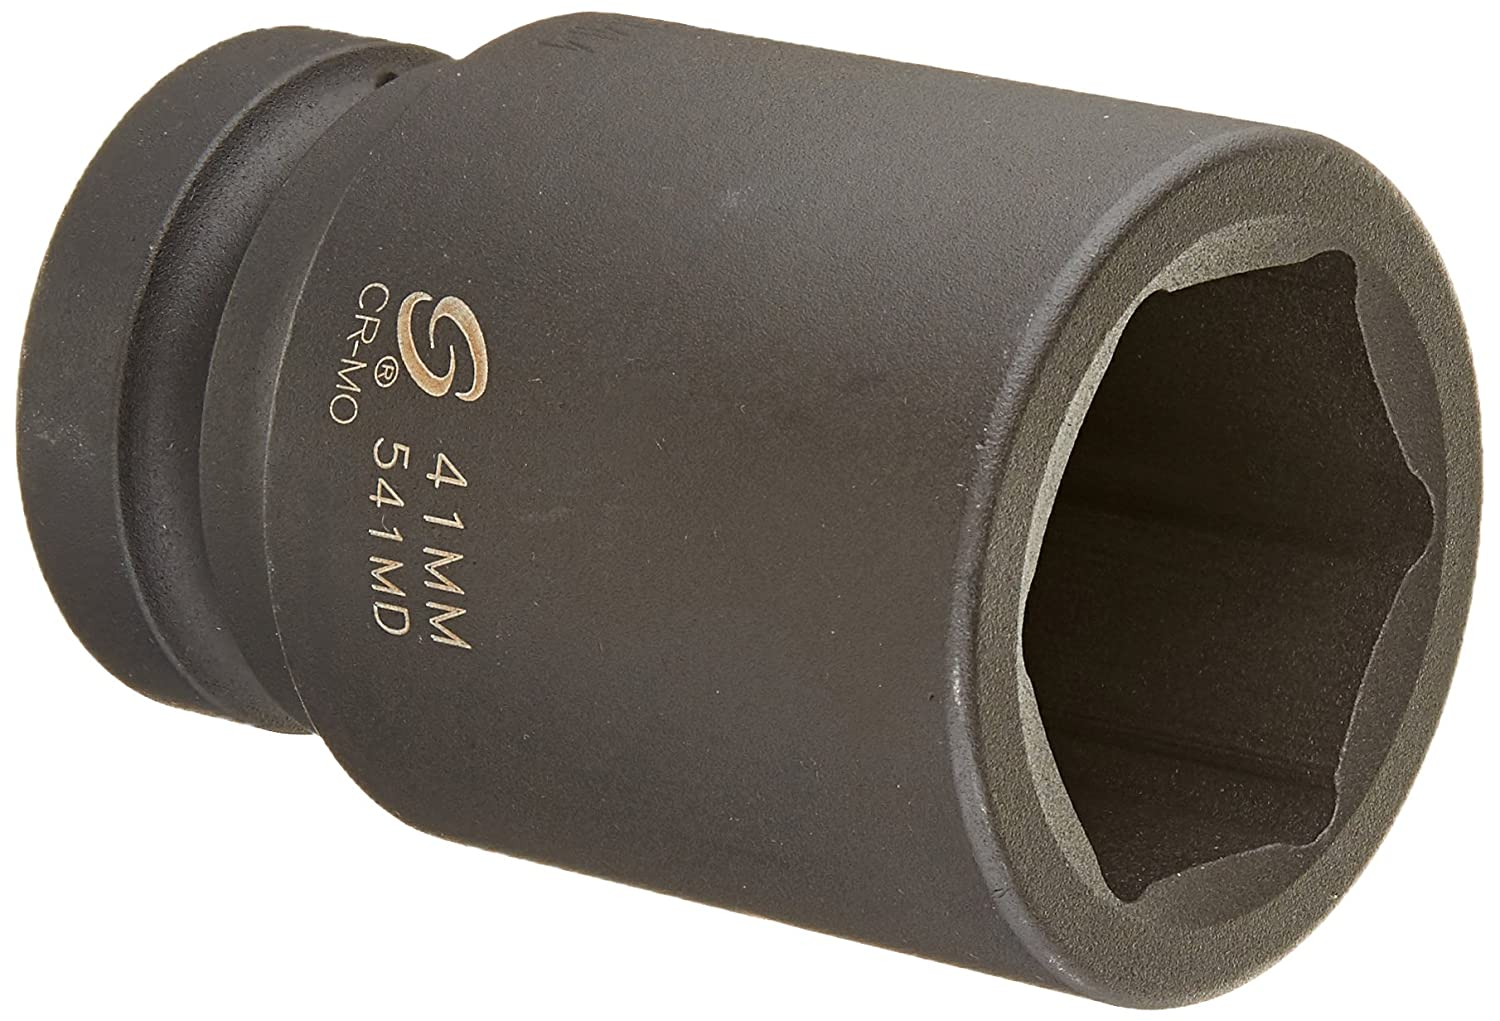 Sunex 541MD 1' Drive Deep 6 Point Impact Socket 41mm Sunex International